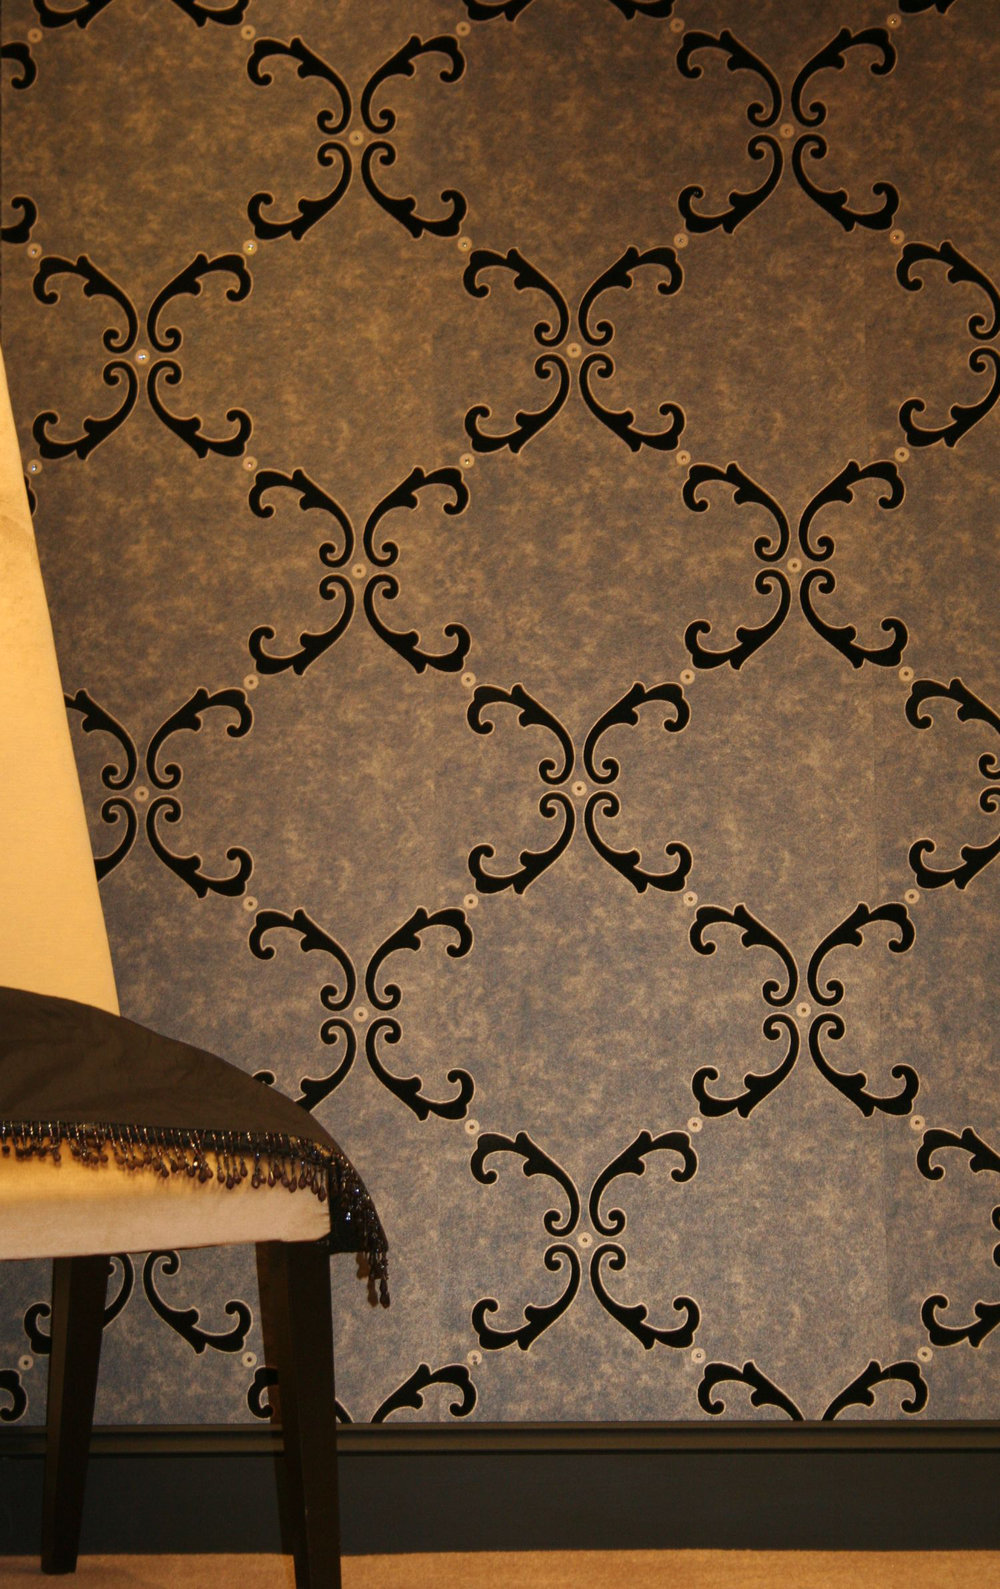 Trellis Scroll Flocked Wallpaper crystallised - Black / Gold - by Kandola